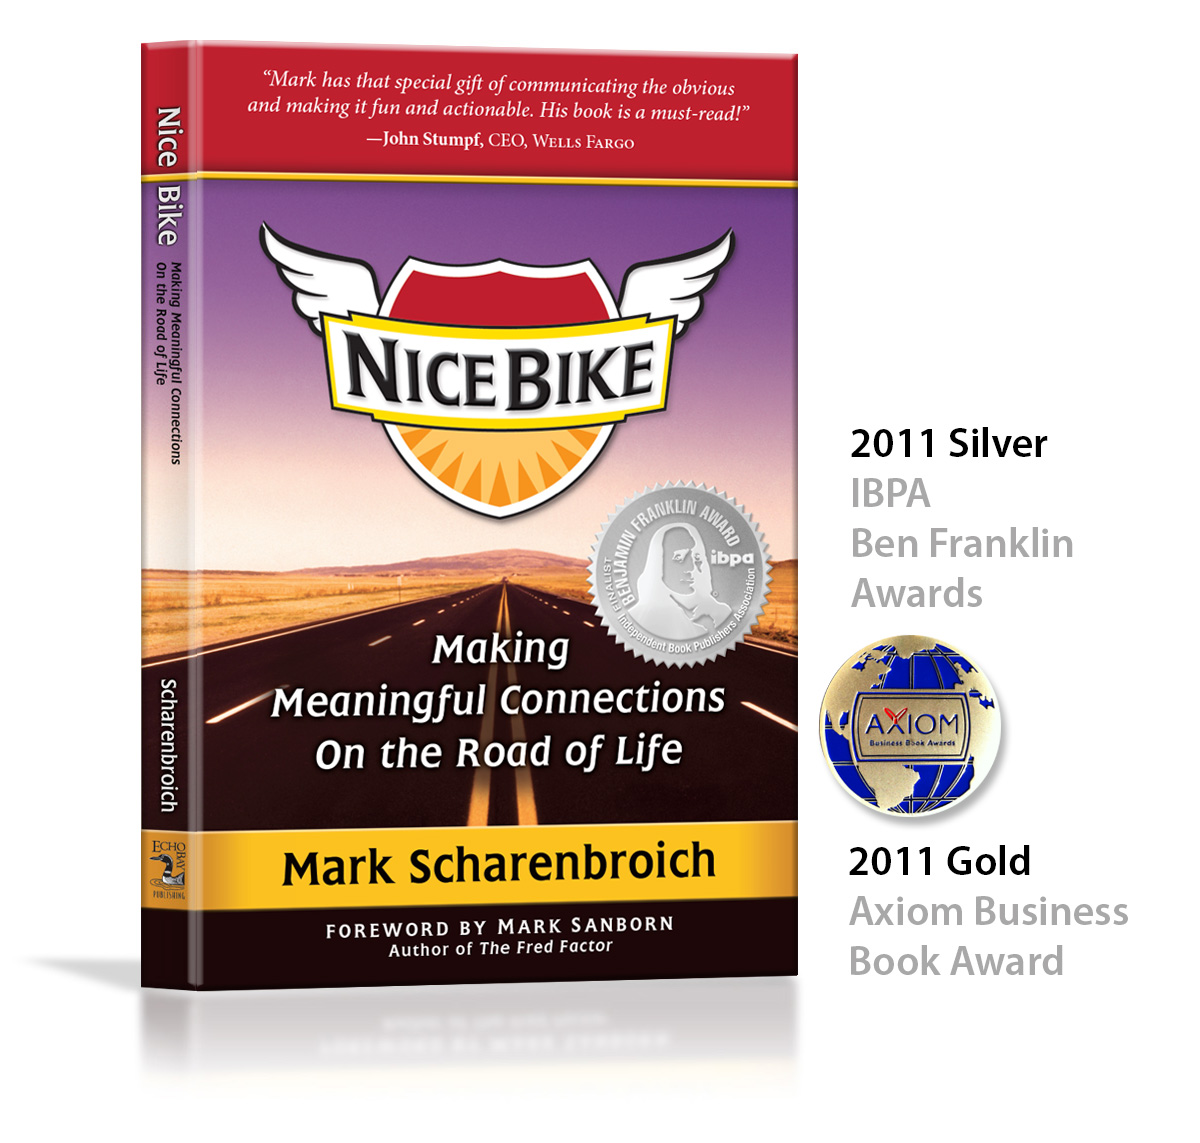 Image Book Keynote Speaker And Author Mark Scharenbroich Nice Bike Book